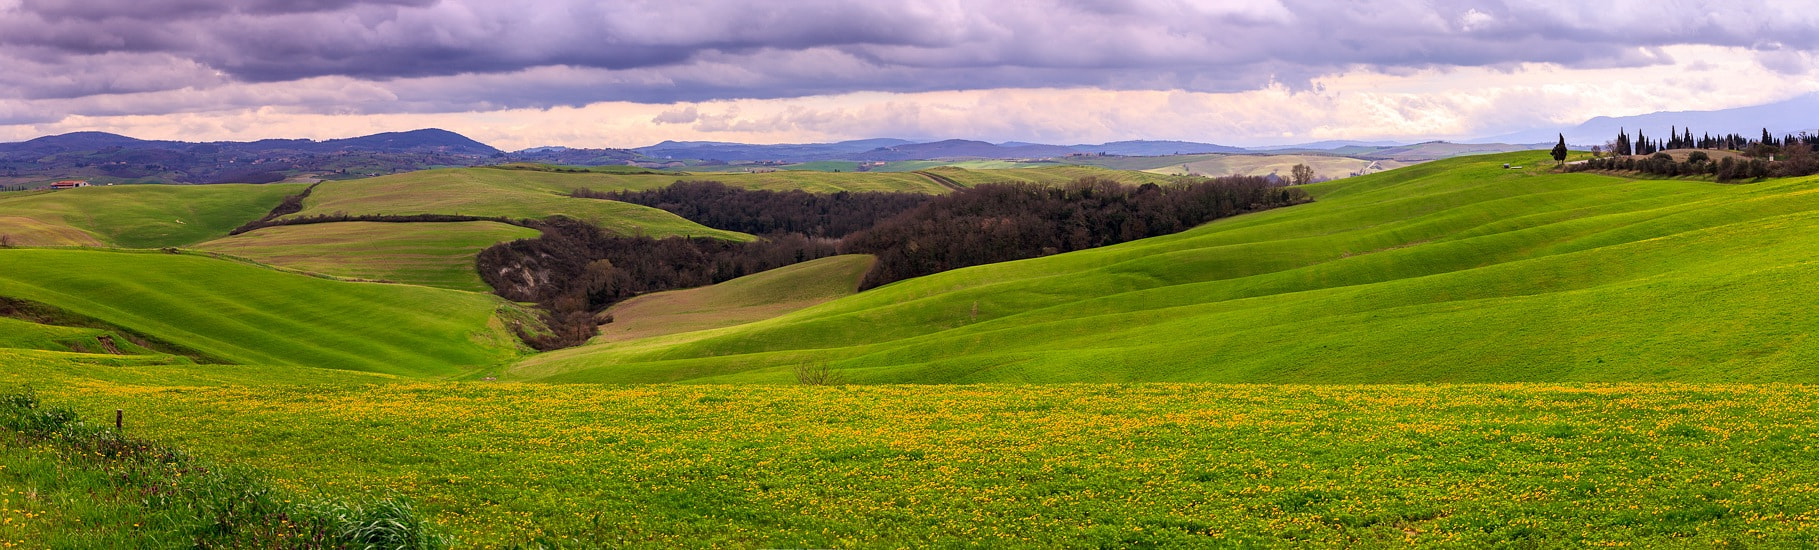 Photograph panorama of Tuscany. by Joan Santaugini on 500px